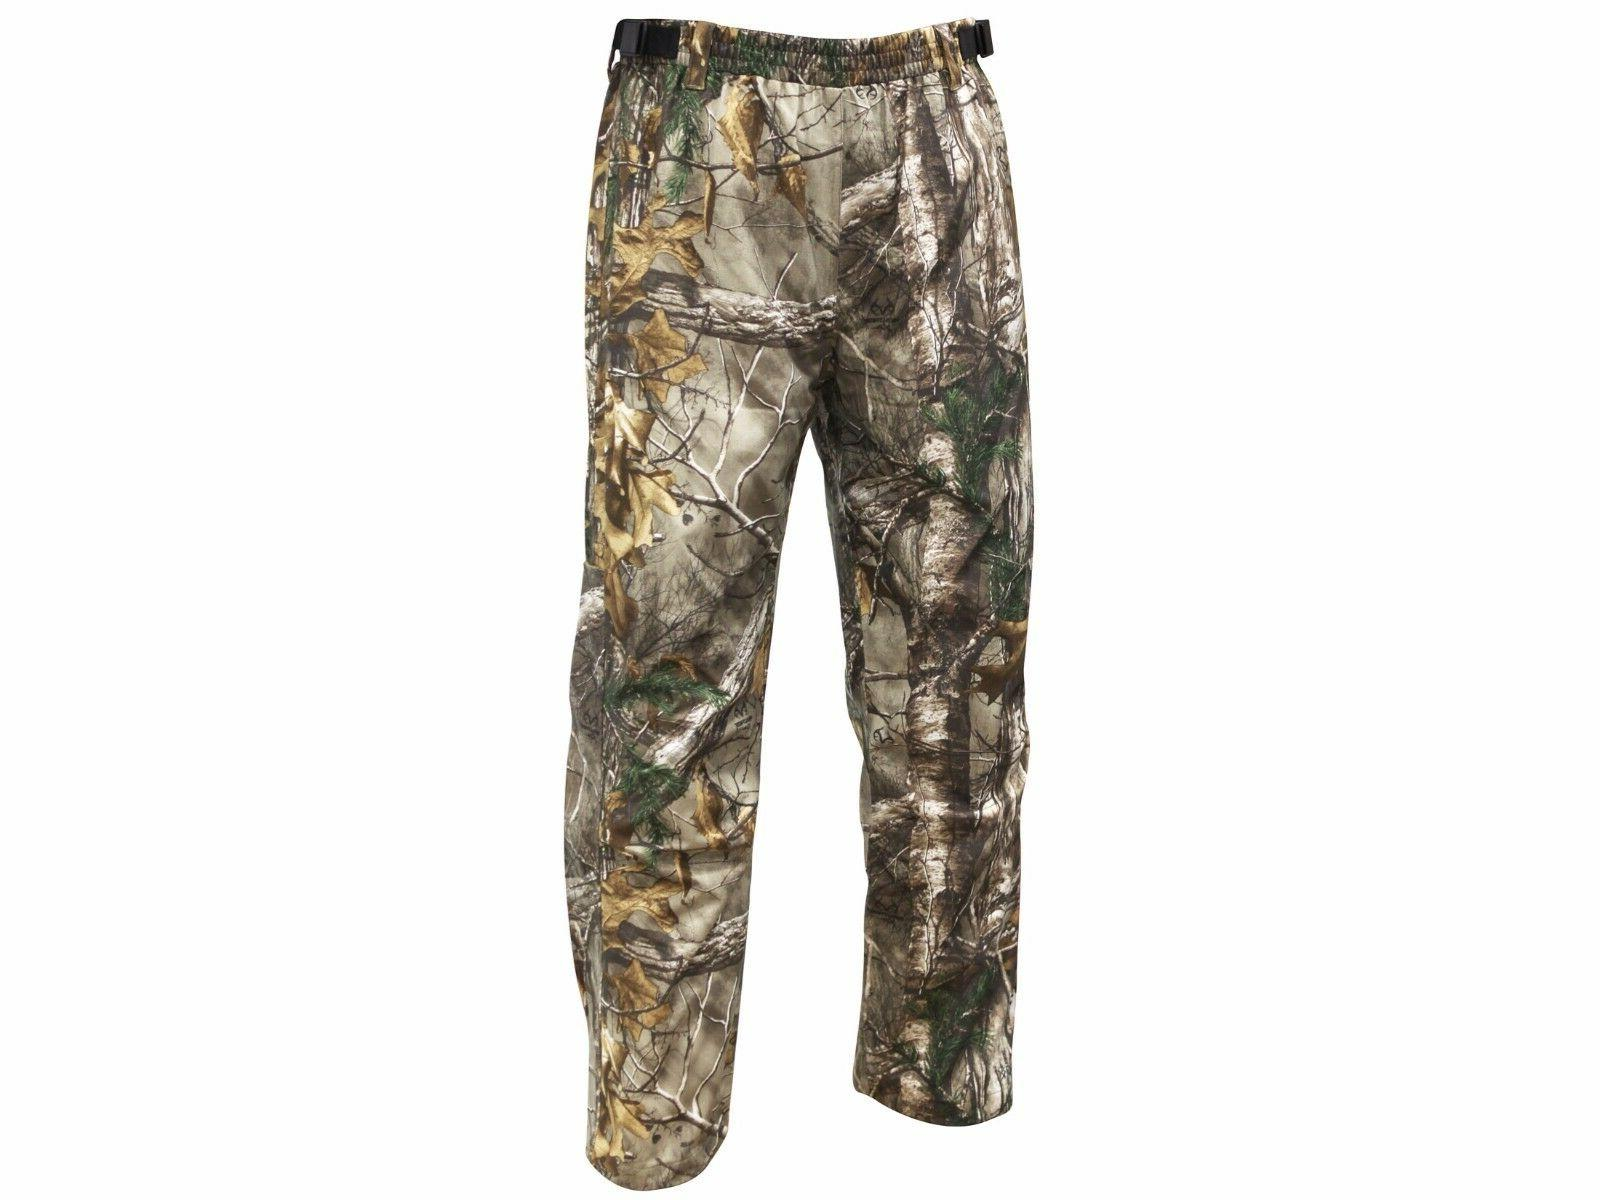 Men's Cold Gear RealTree Xtra & Pants Set Hiking